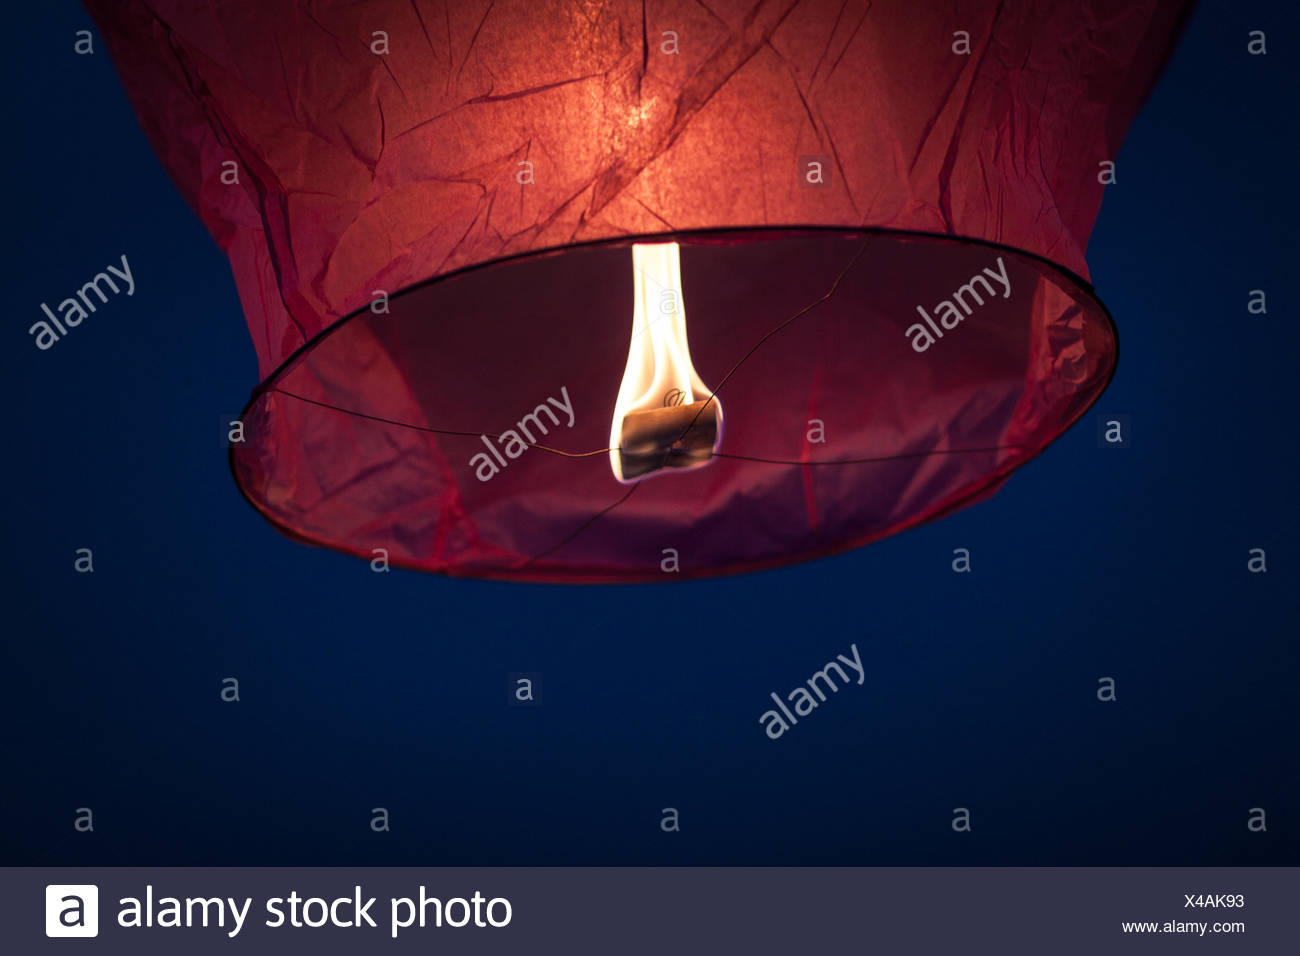 Low Angle View Of Lit Sky Lantern At Night - Stock Image